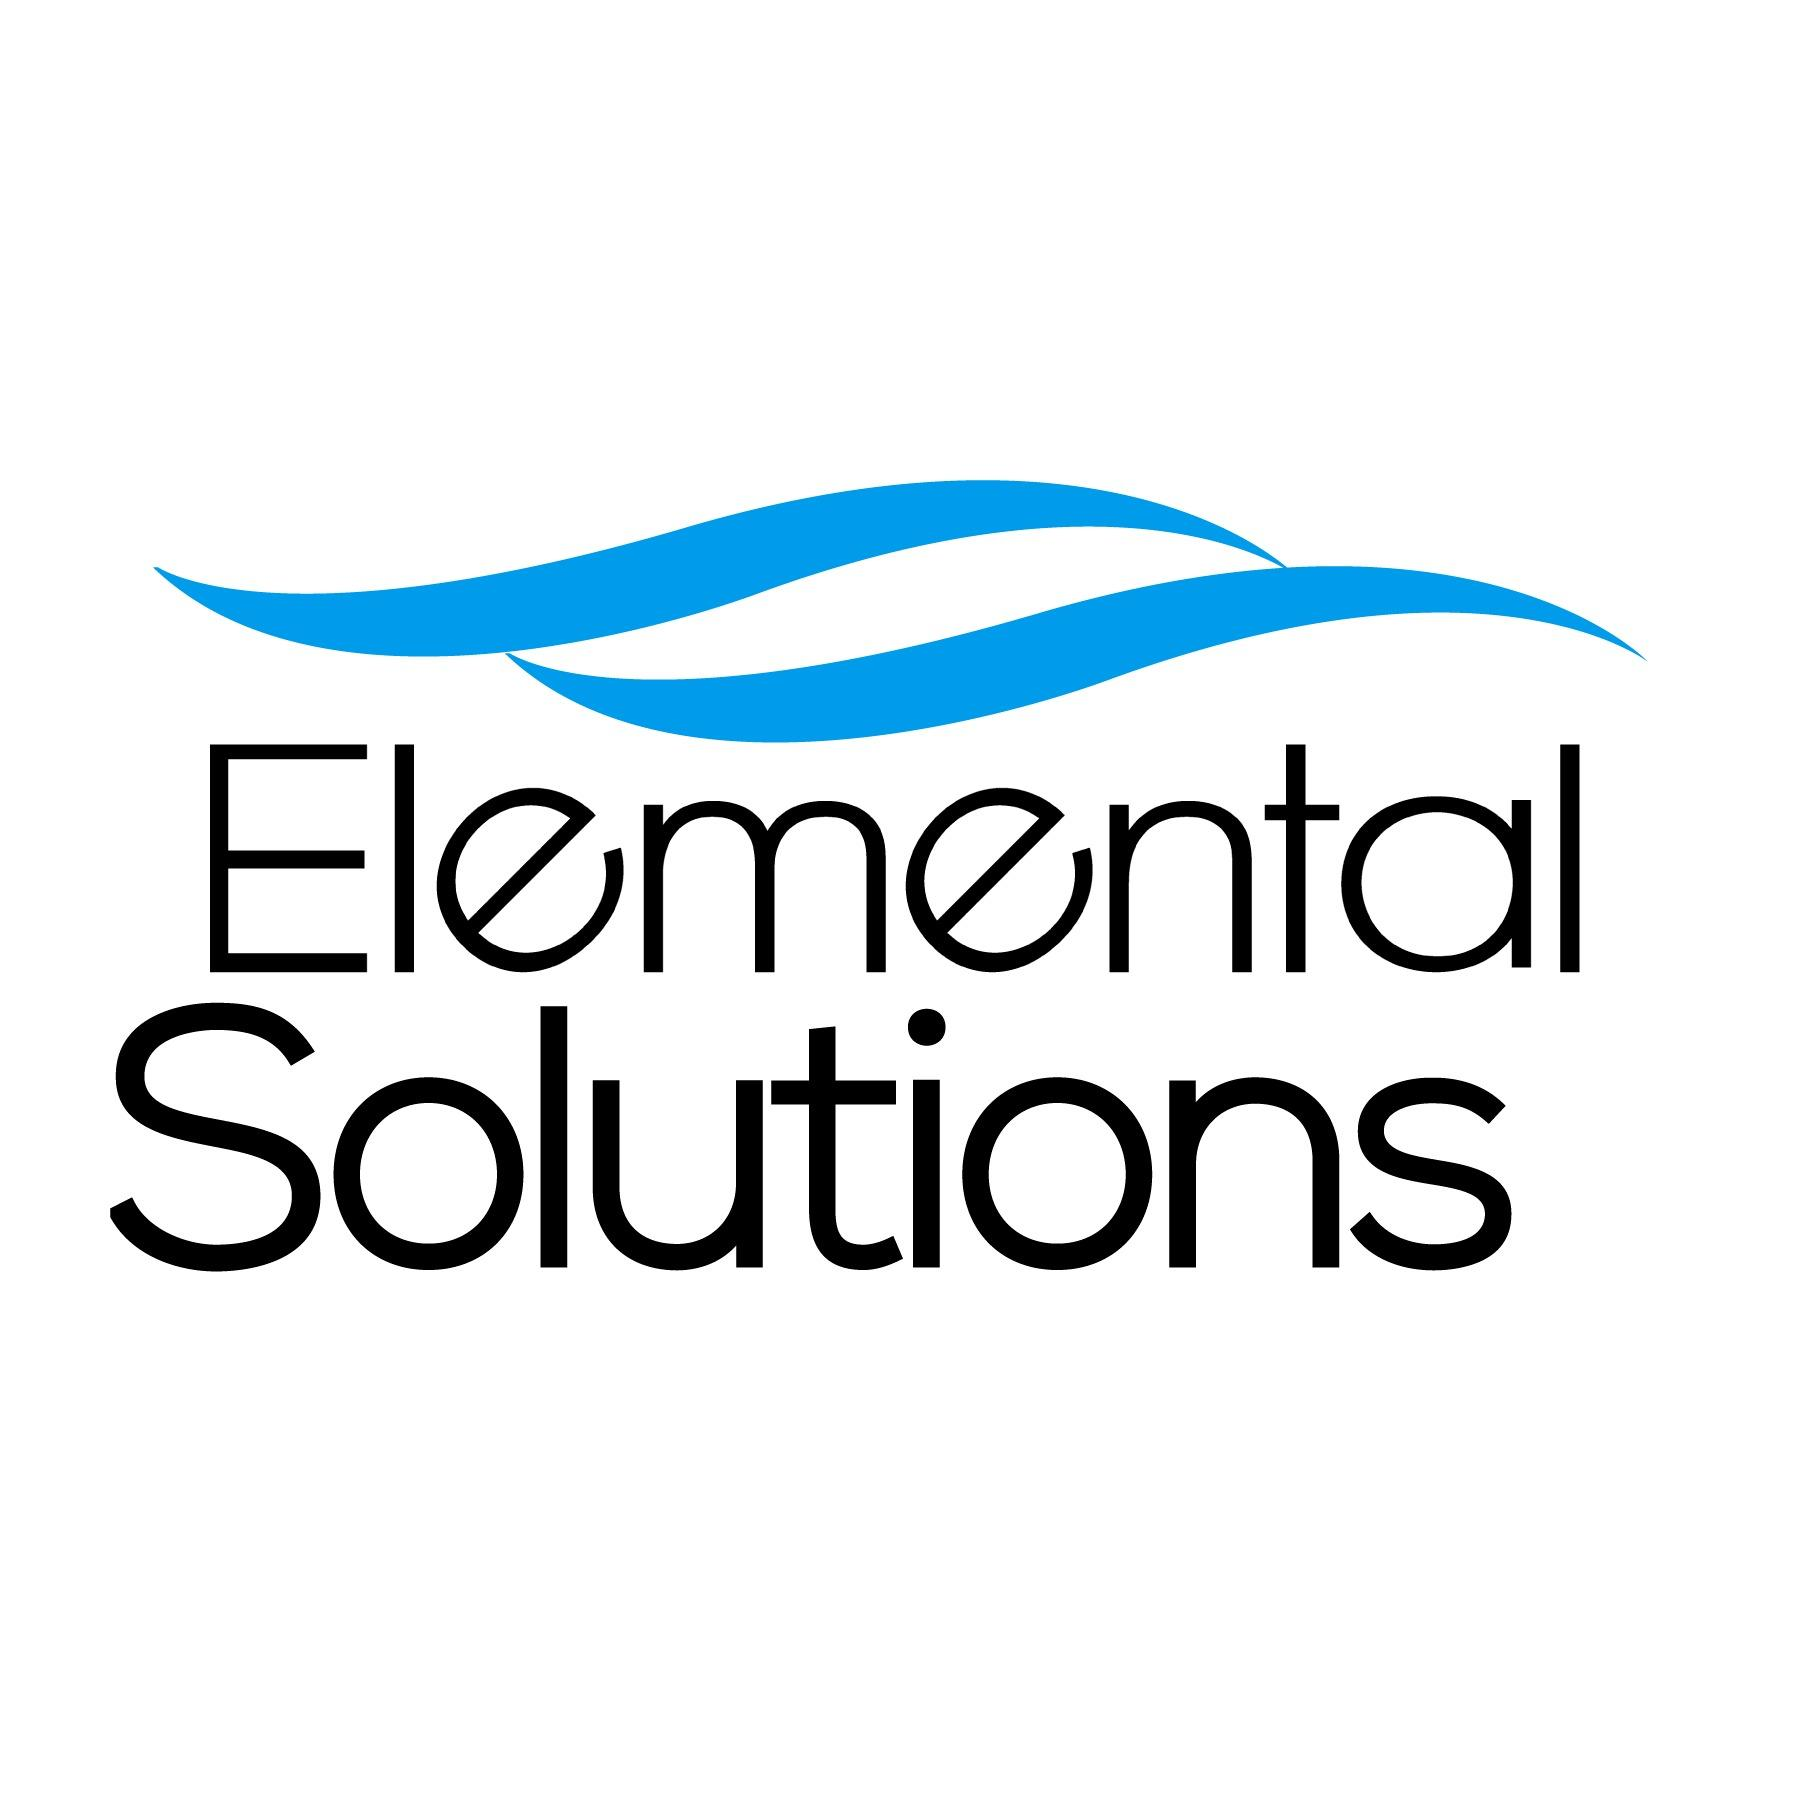 Elemental Solutions